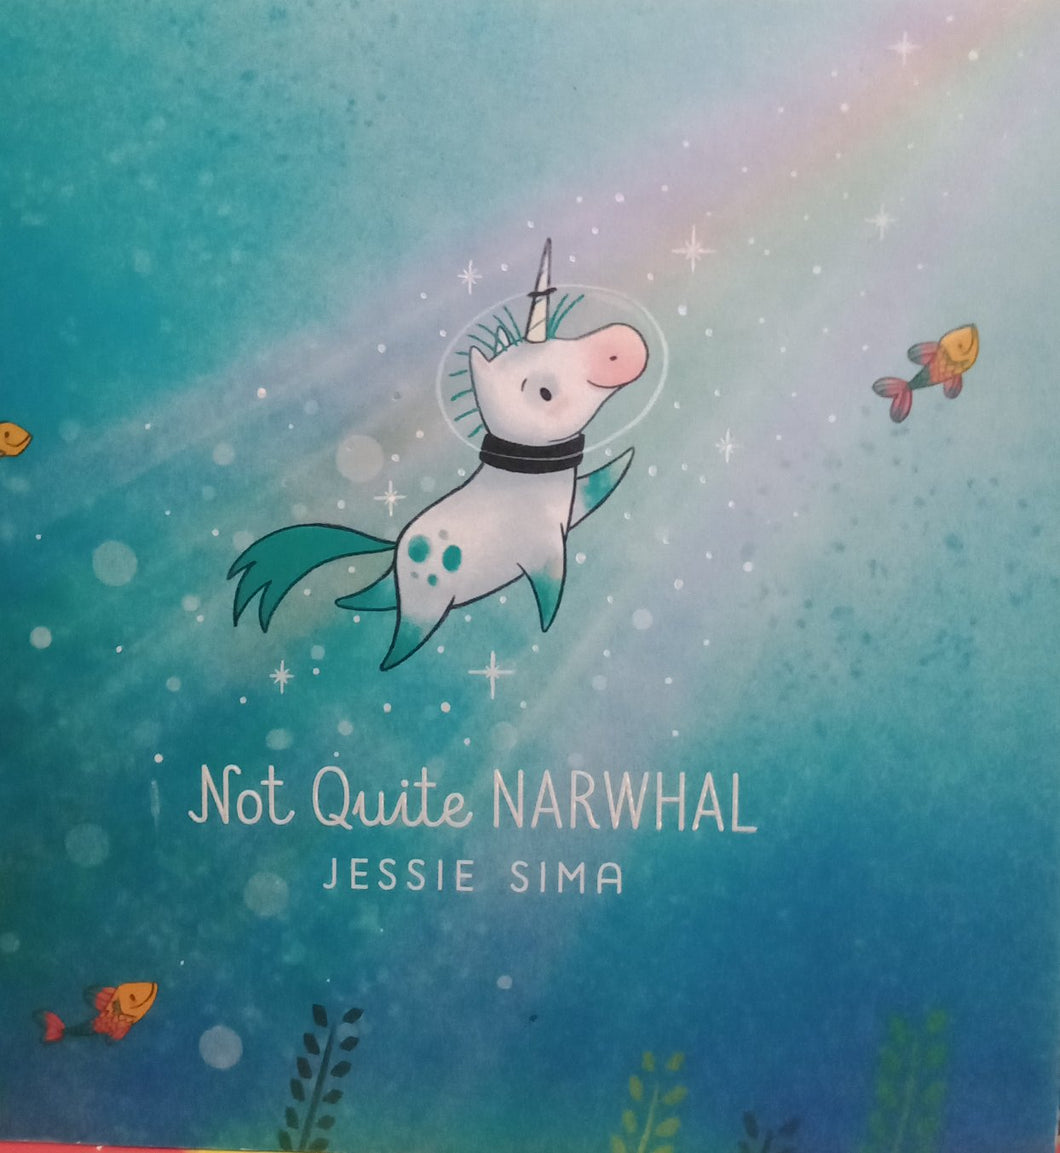 Not quiet narwhal by jessa sima